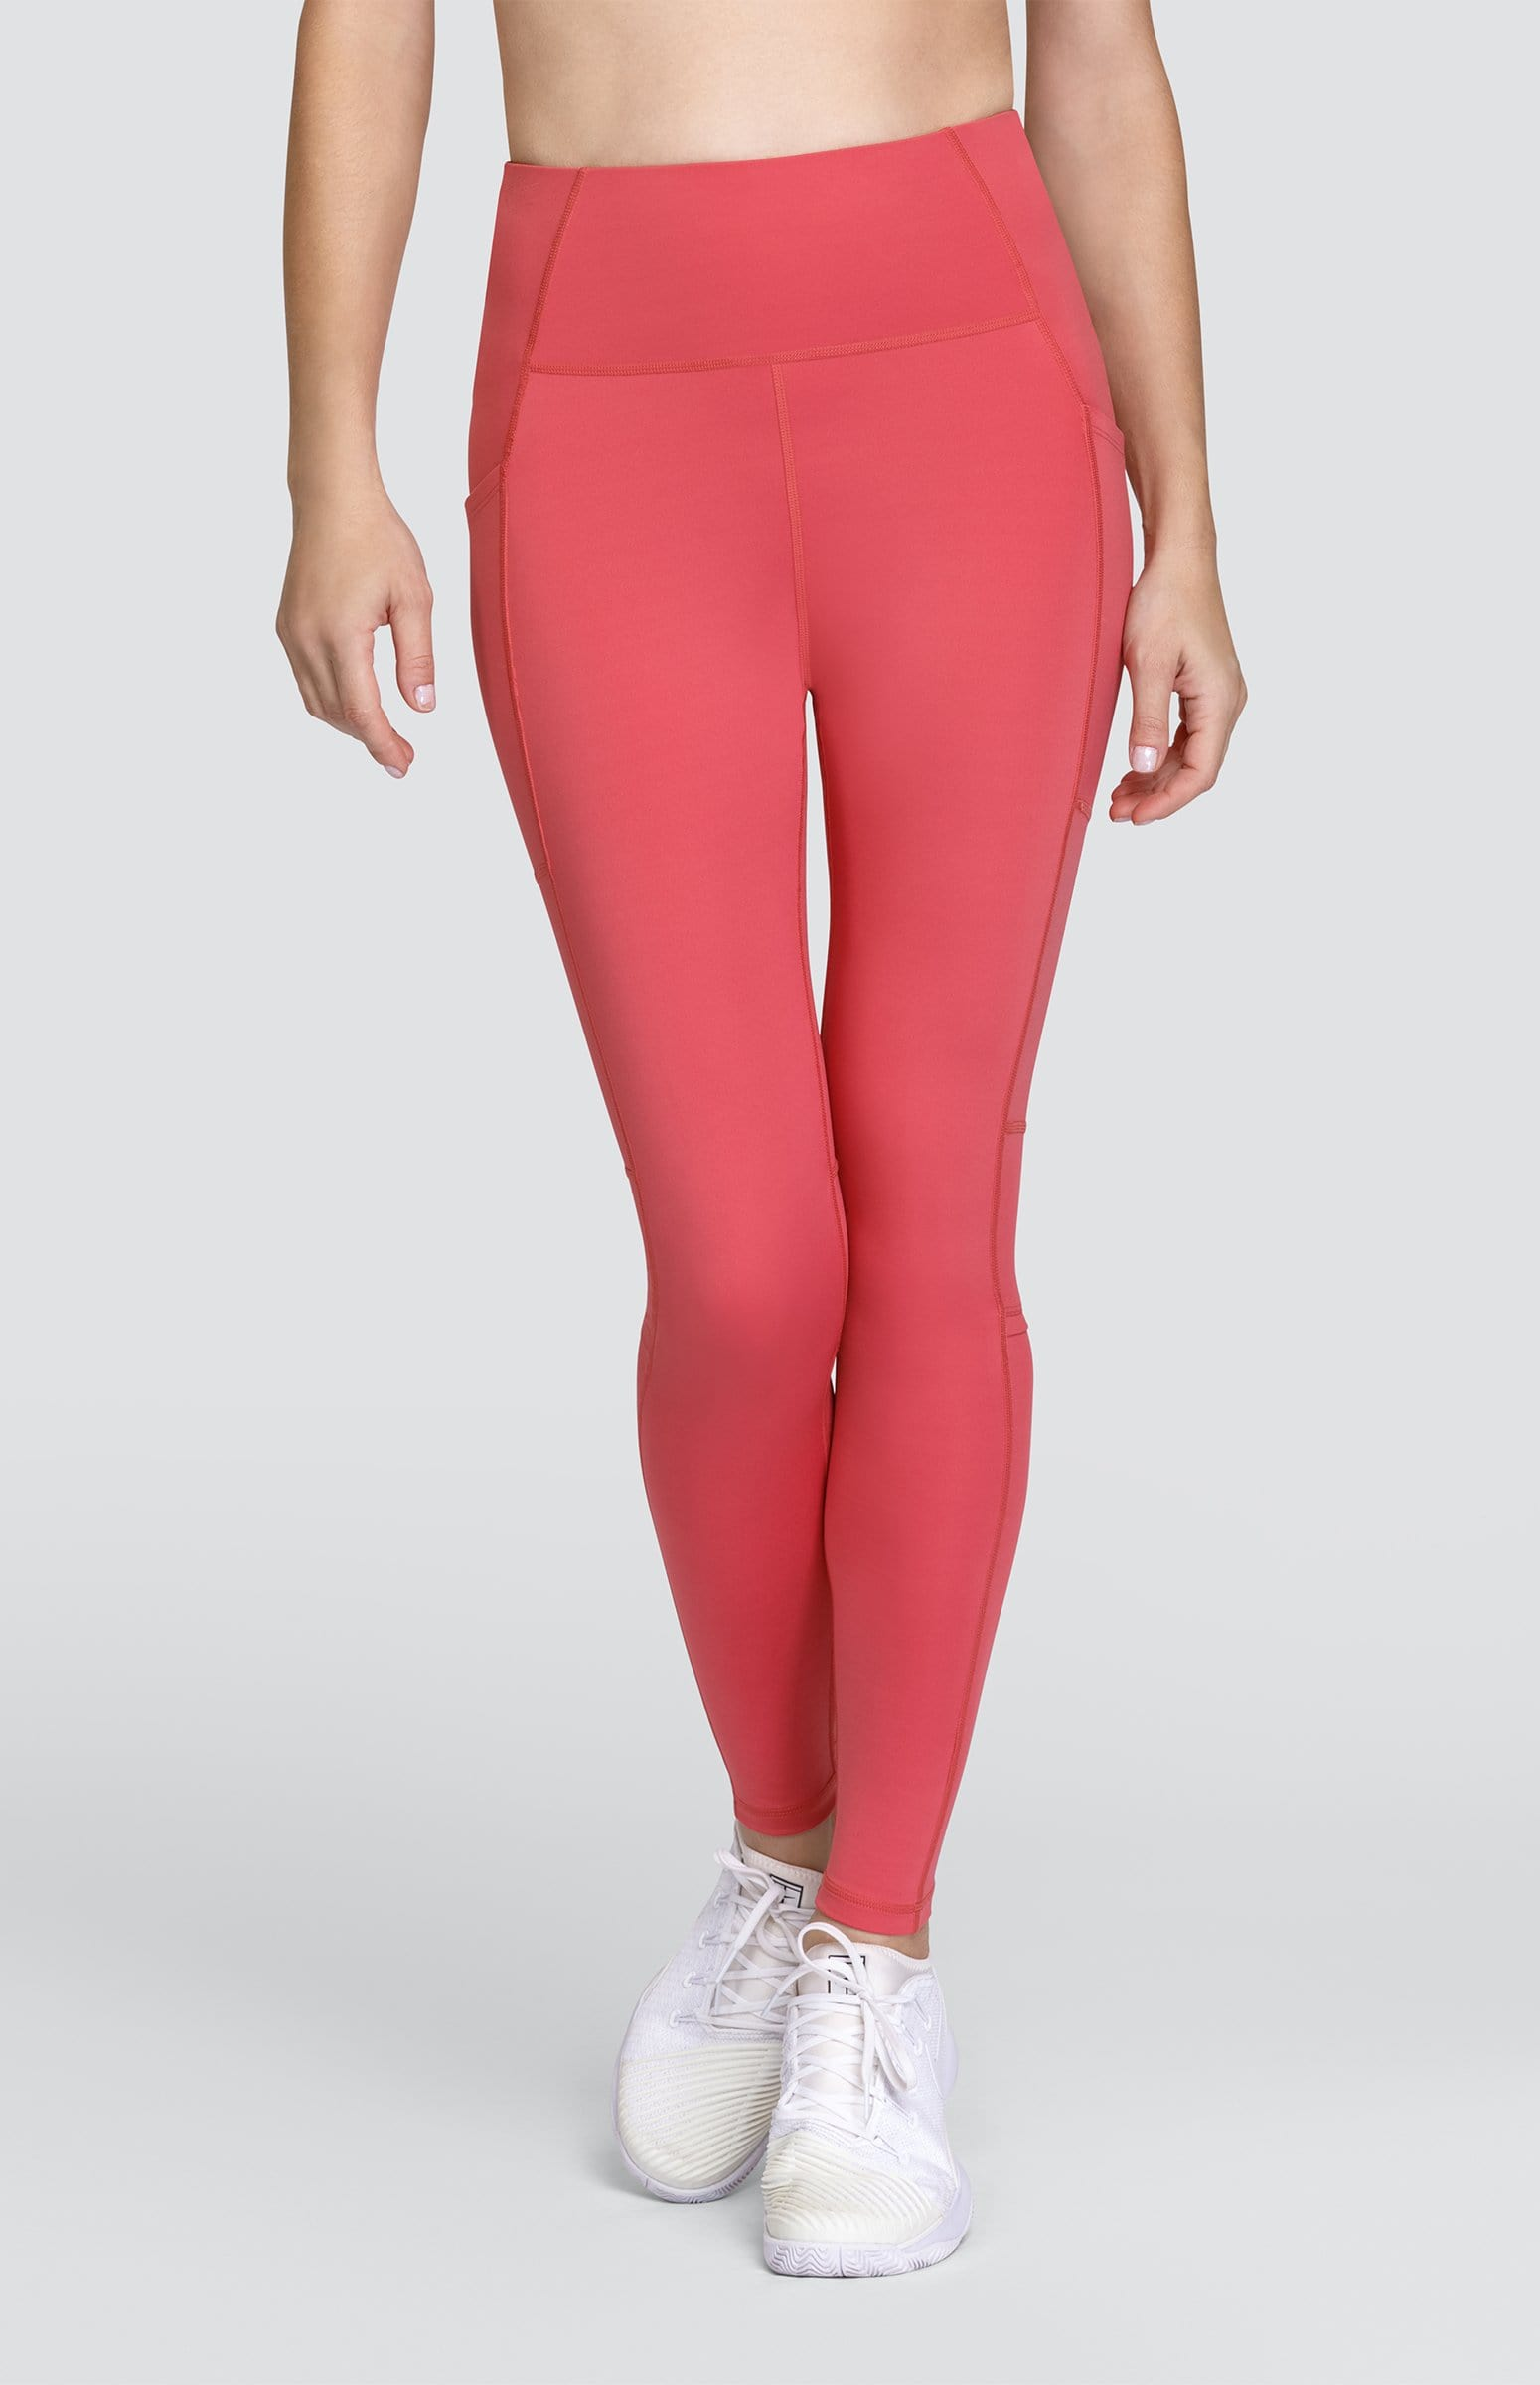 Terry Leggings - Cherry Rose